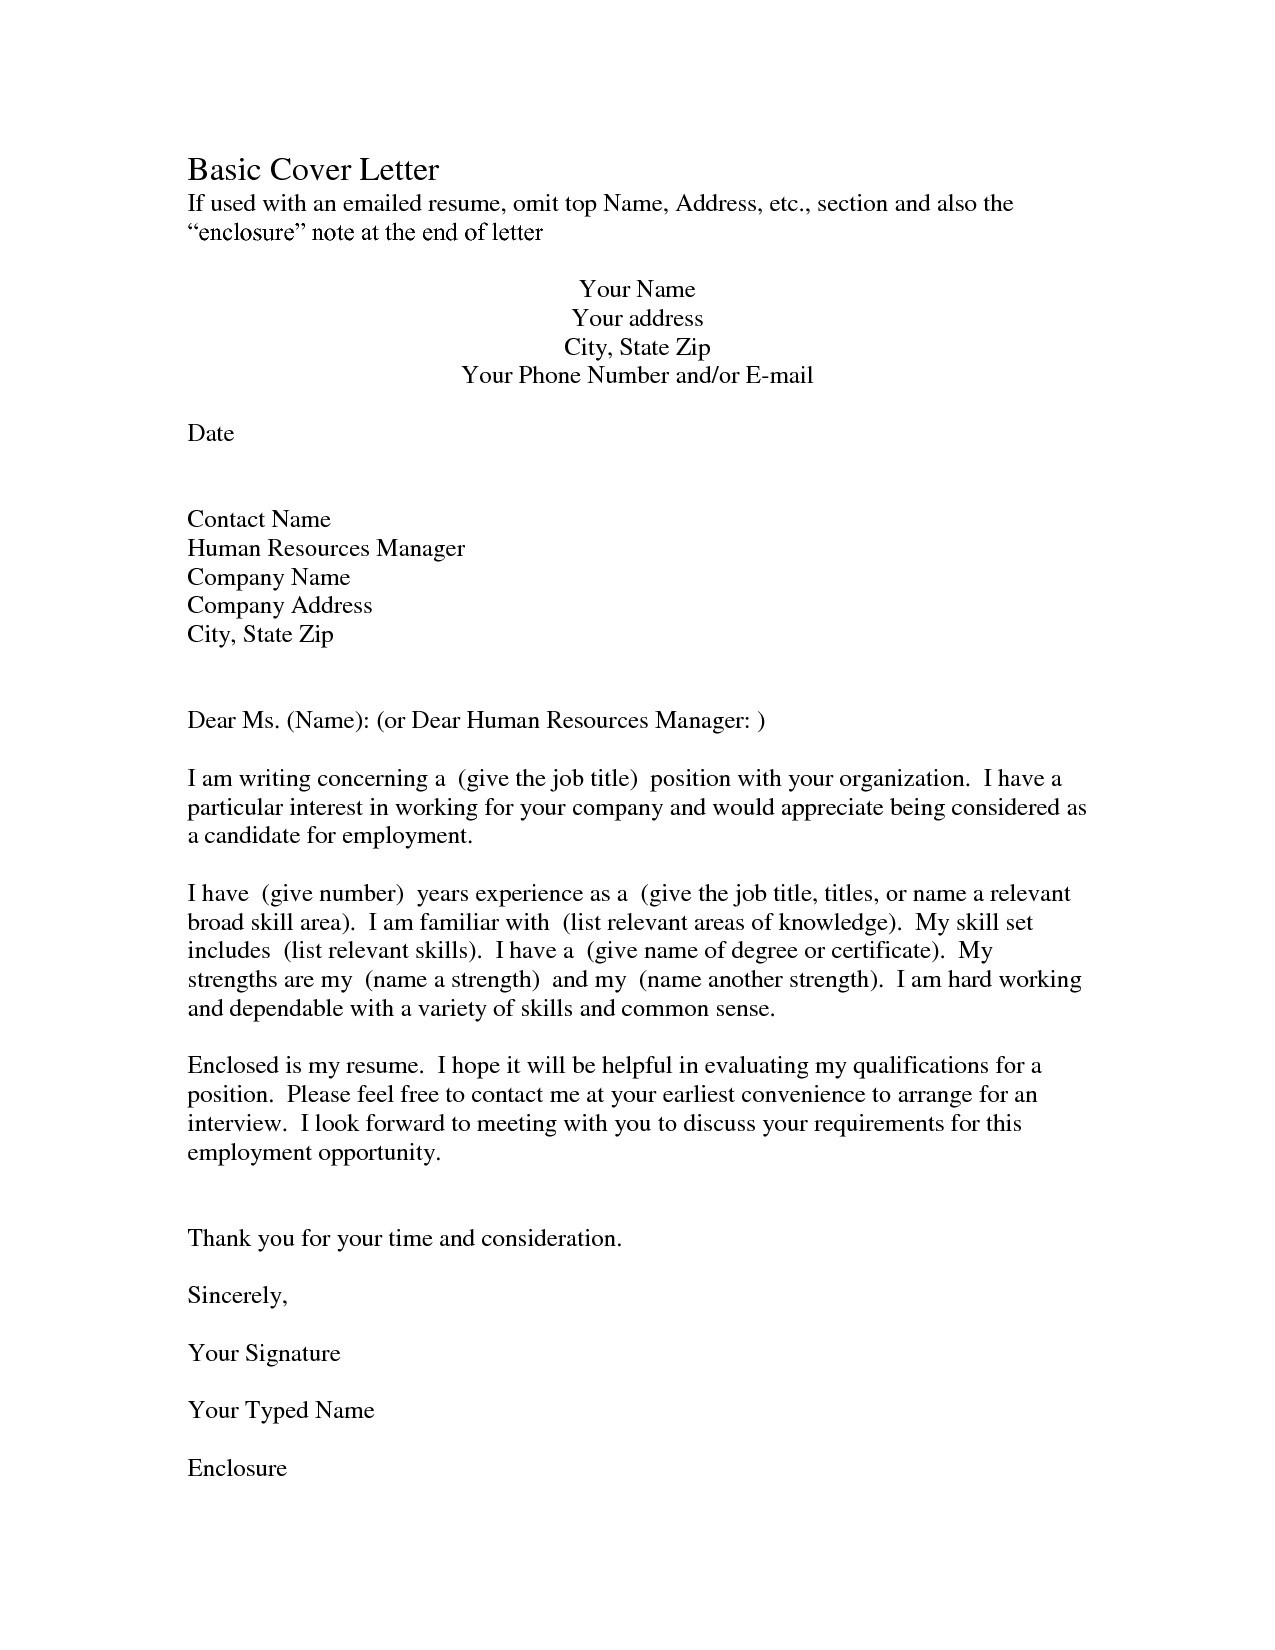 Cover Letter Sample for Job Application Template - Free Resume Cover Letter format S